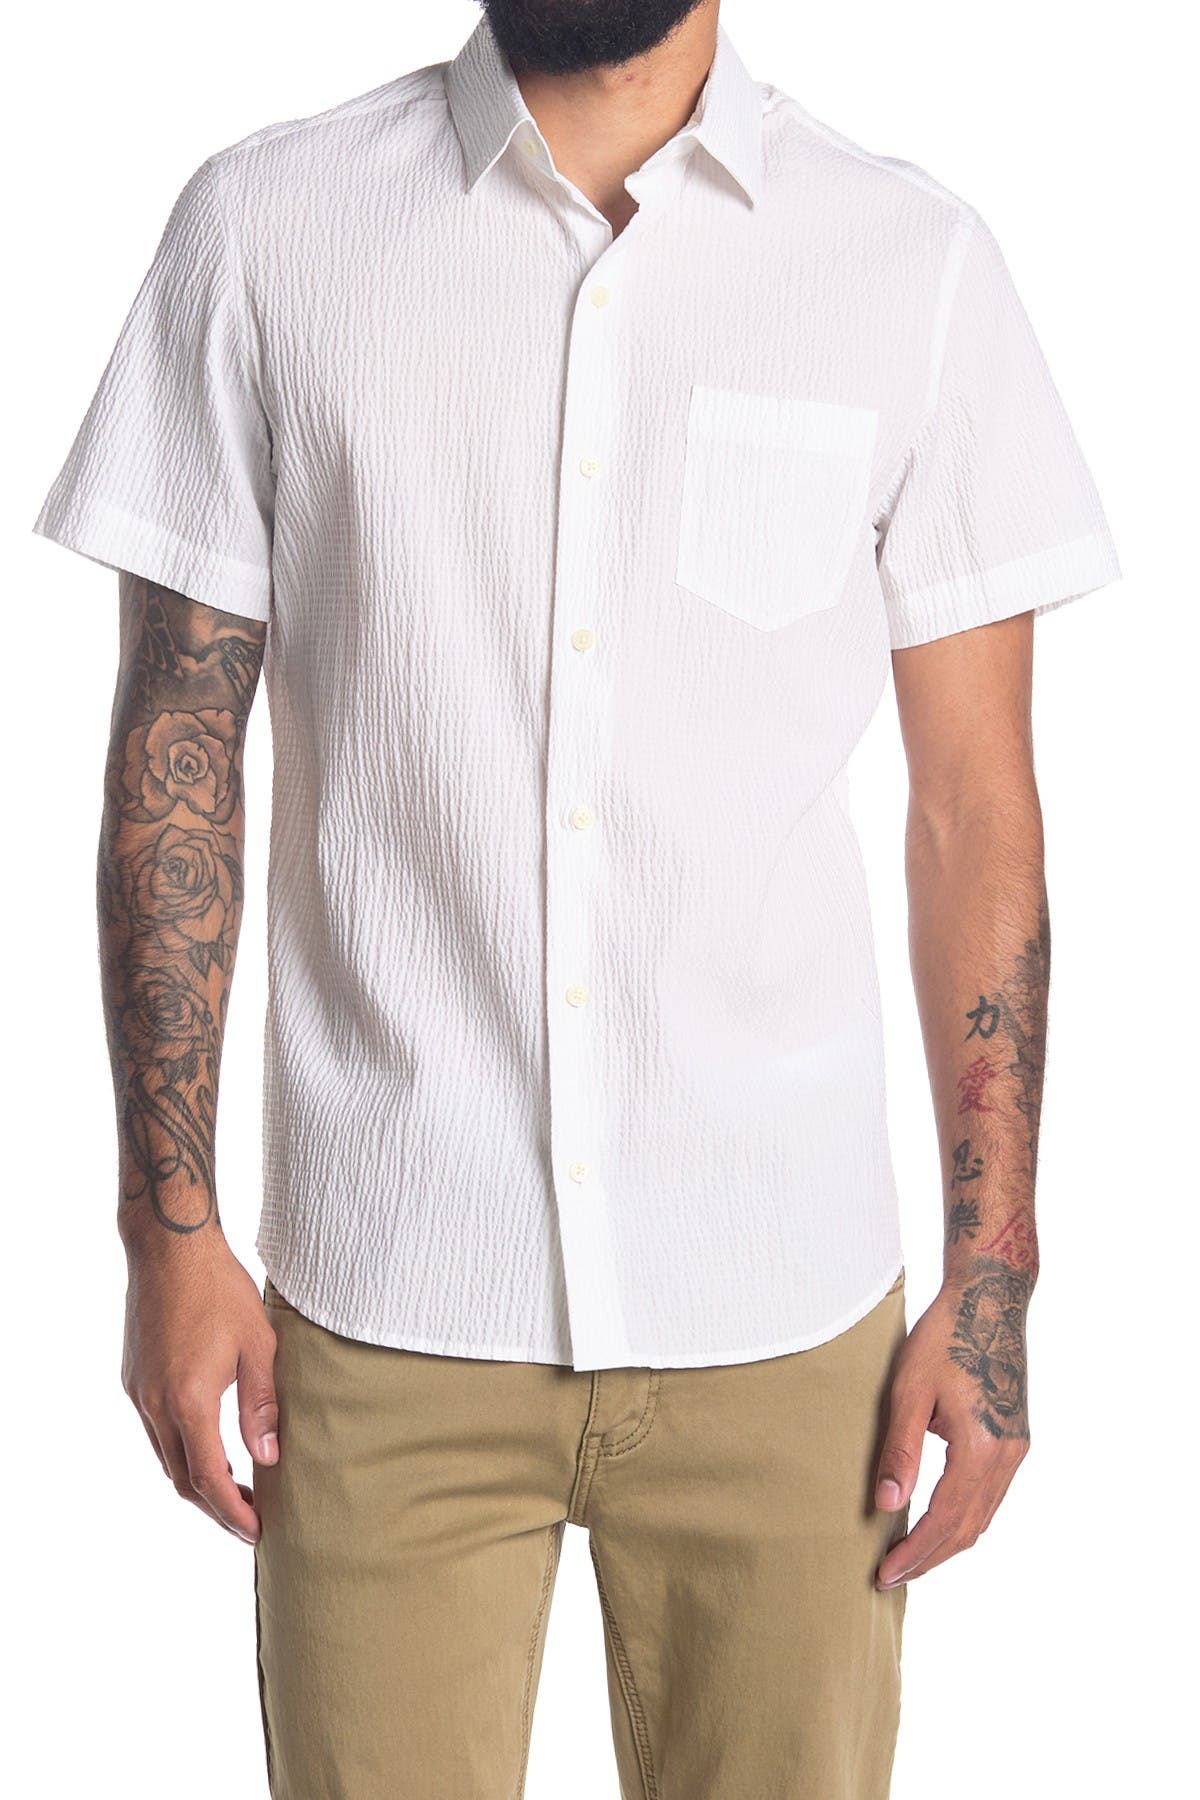 Image of DKNY Short Sleeve Button Down Shirt